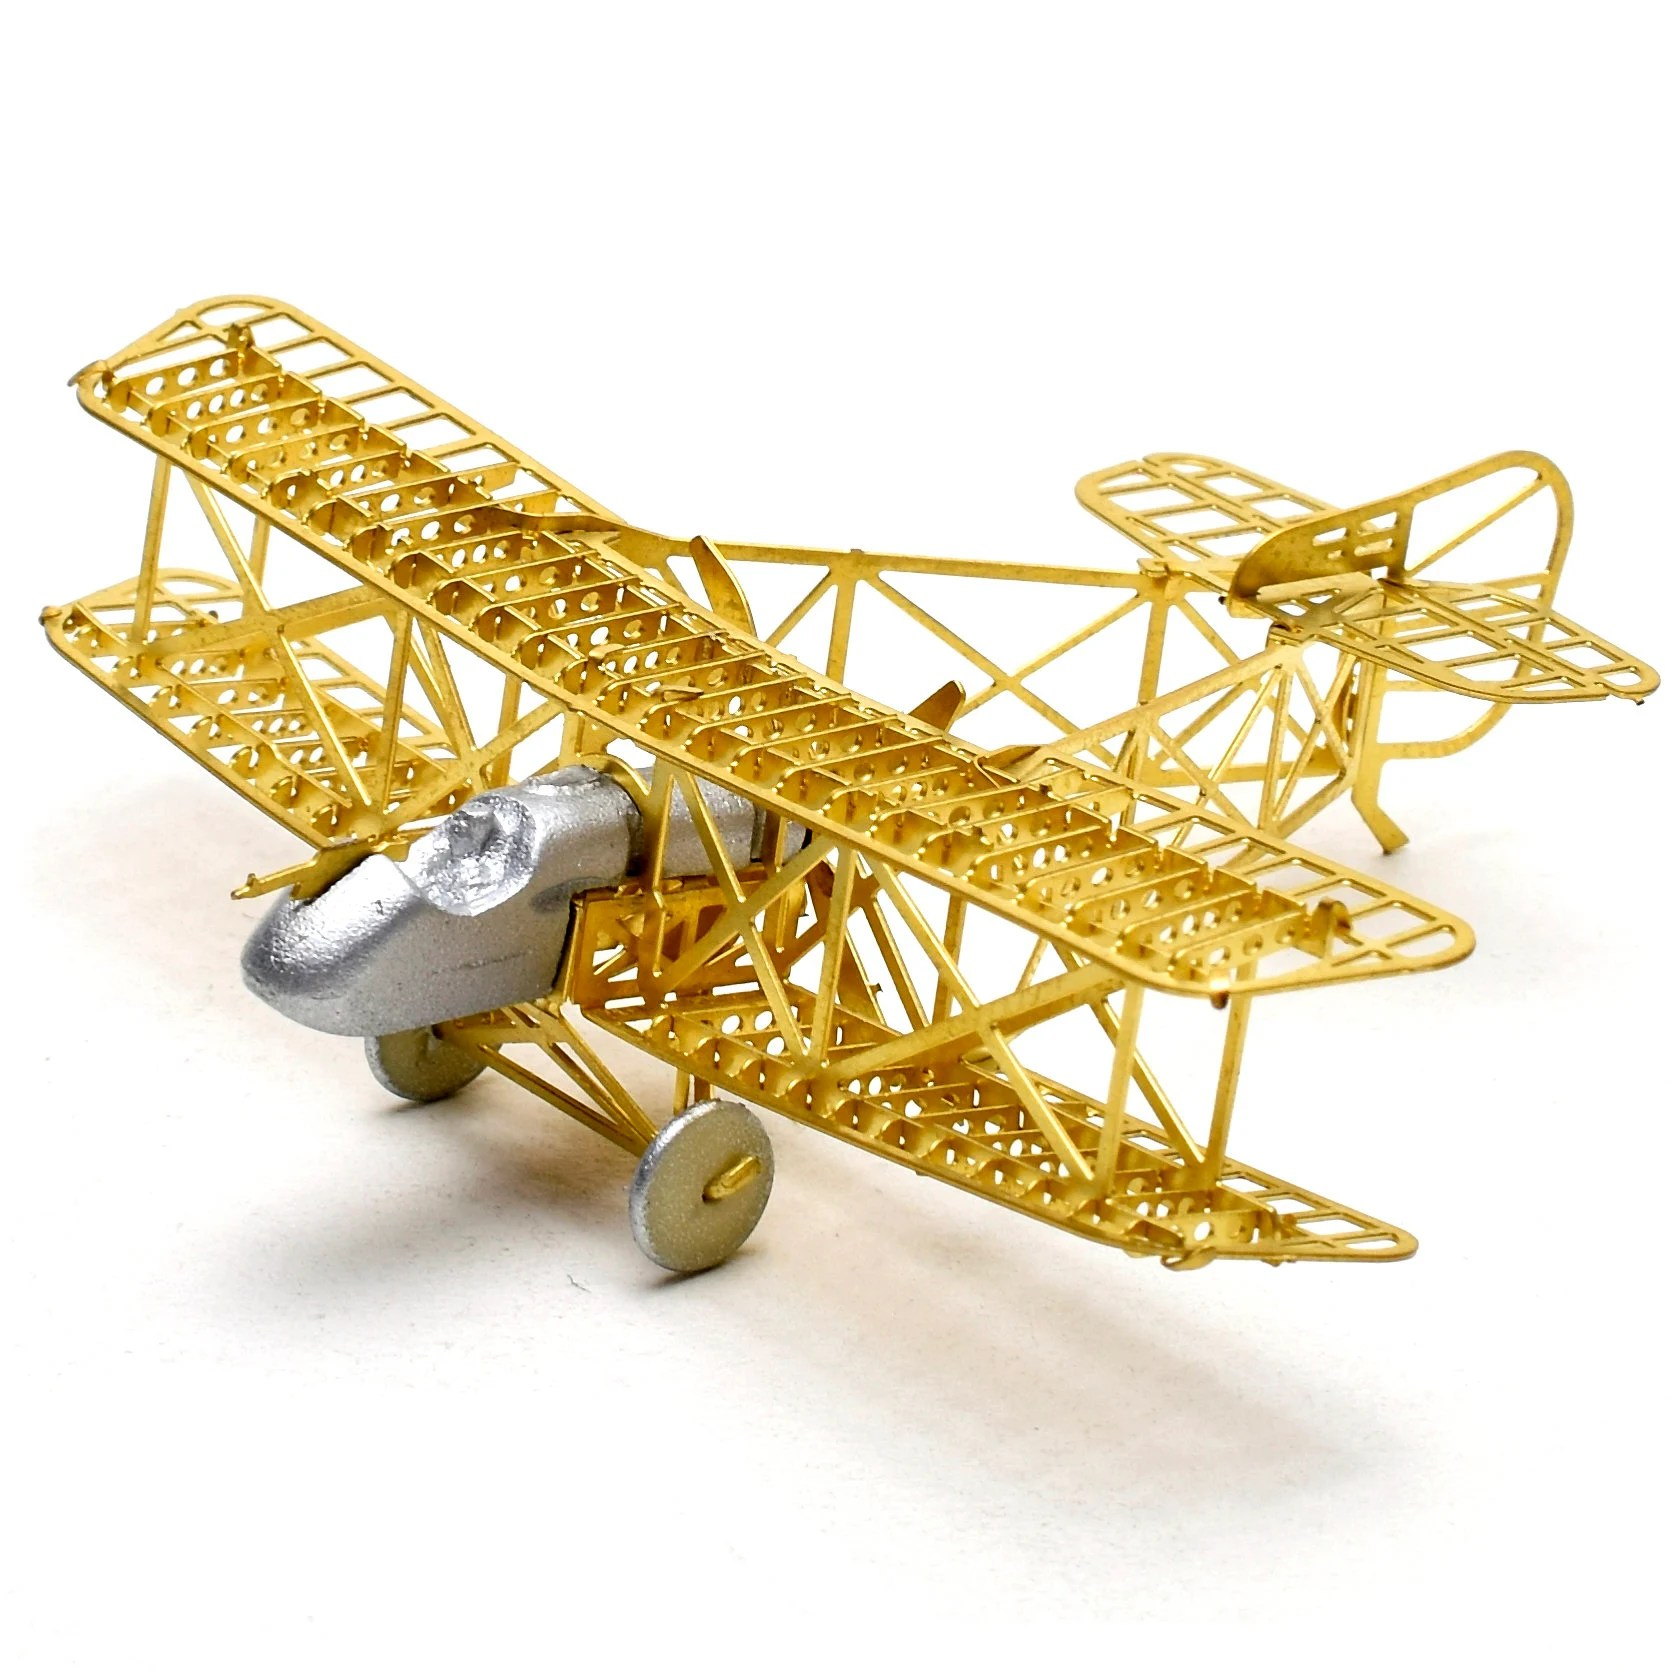 Diy Airco 1 160 Airco Dh2 Scale Brass Etched Model Kit Airplane 3d Diy Metal Puzzle Miniature Toy Hobby Splicing Science Creative Skeleton Structure